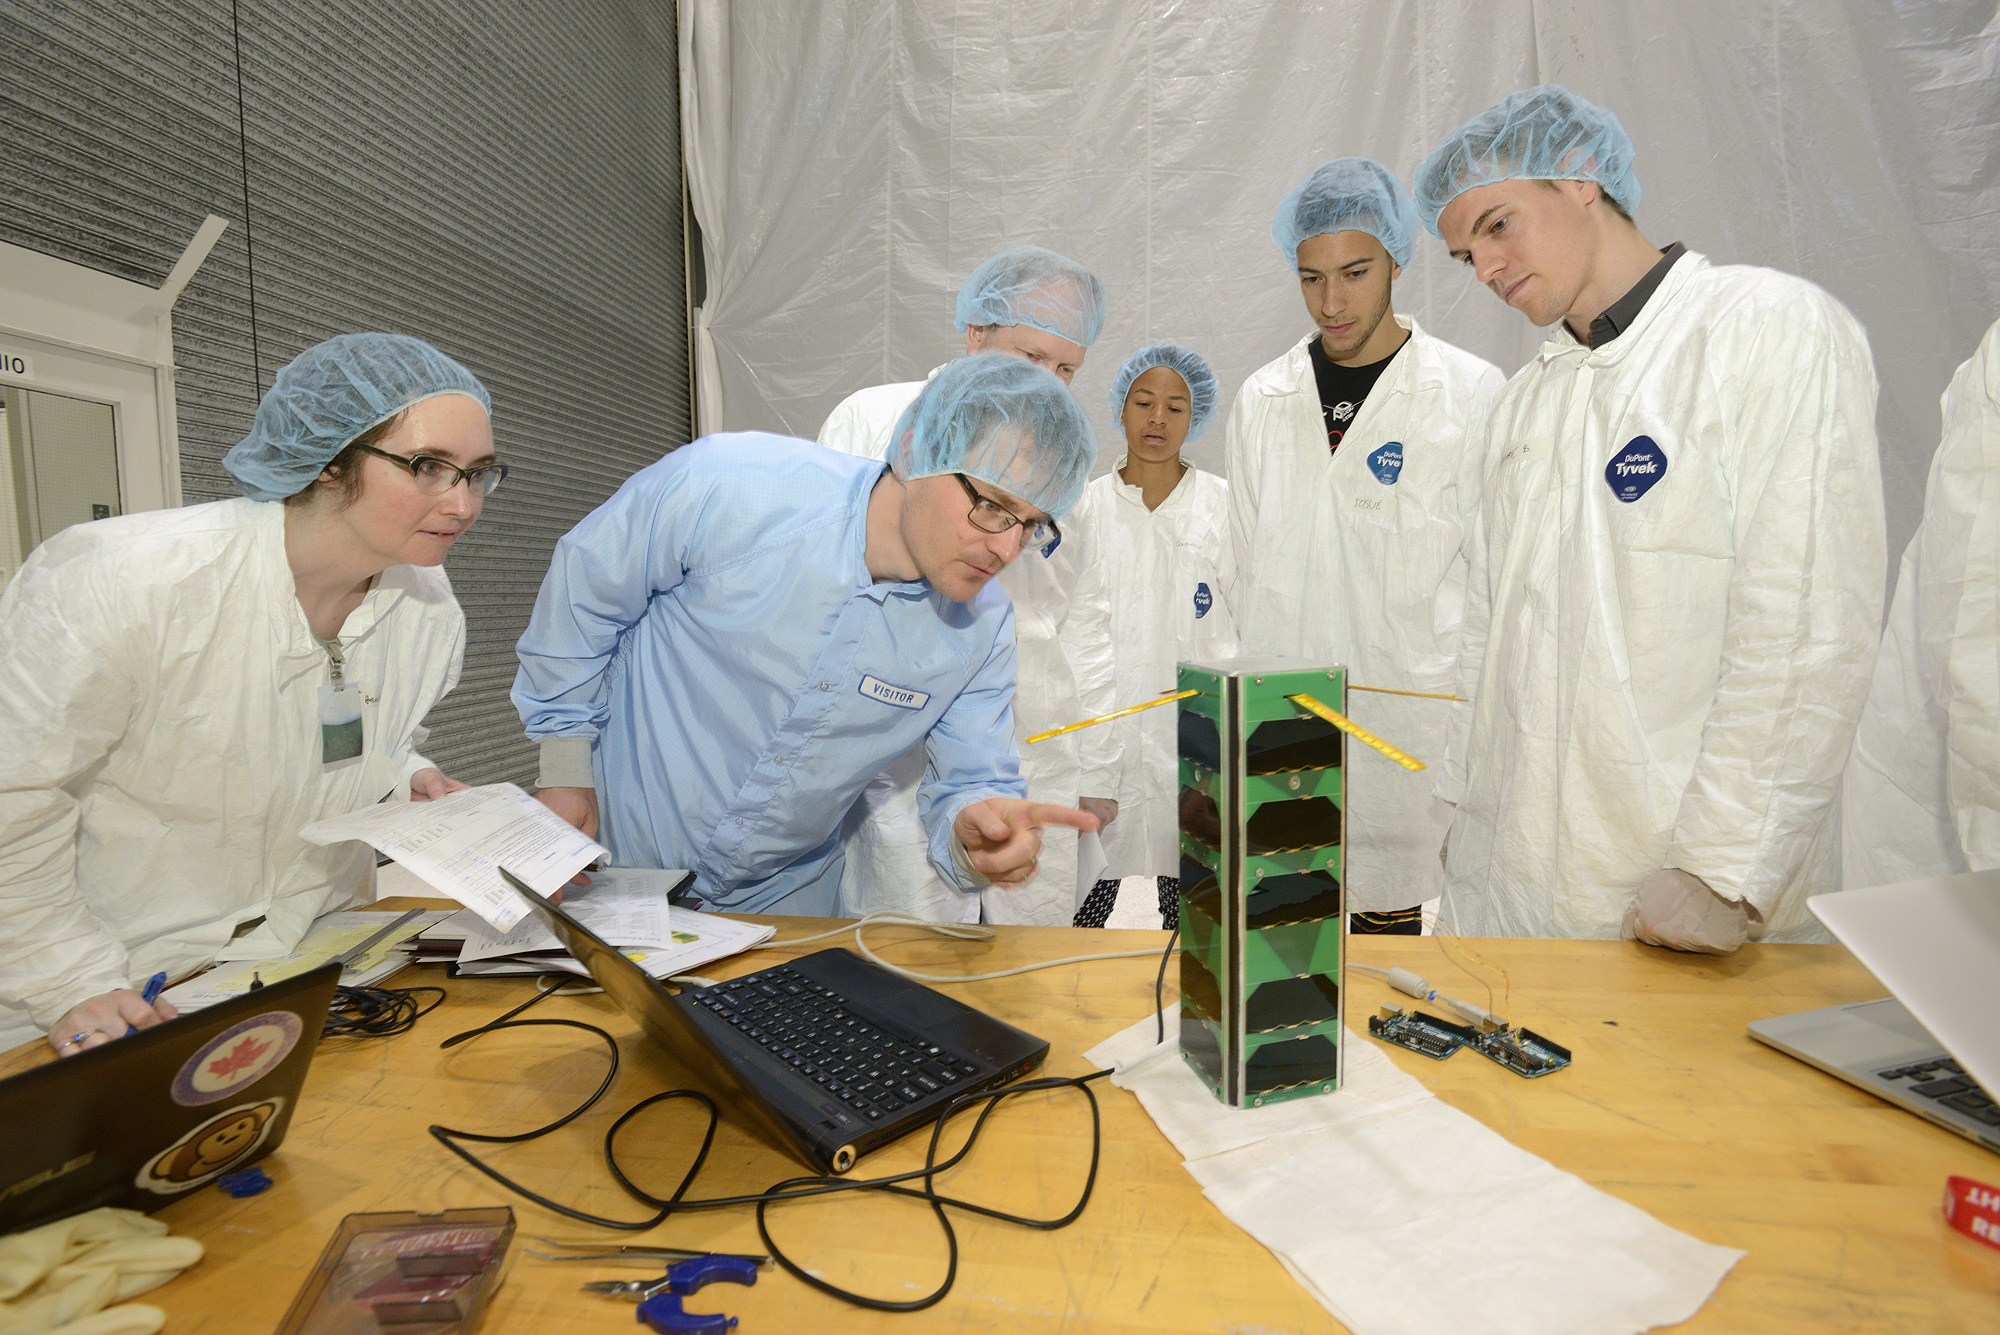 Judges evaluate the satellite designs in the Canadian Space Agency's David Florida Laboratory, Ottawa, Ontario.